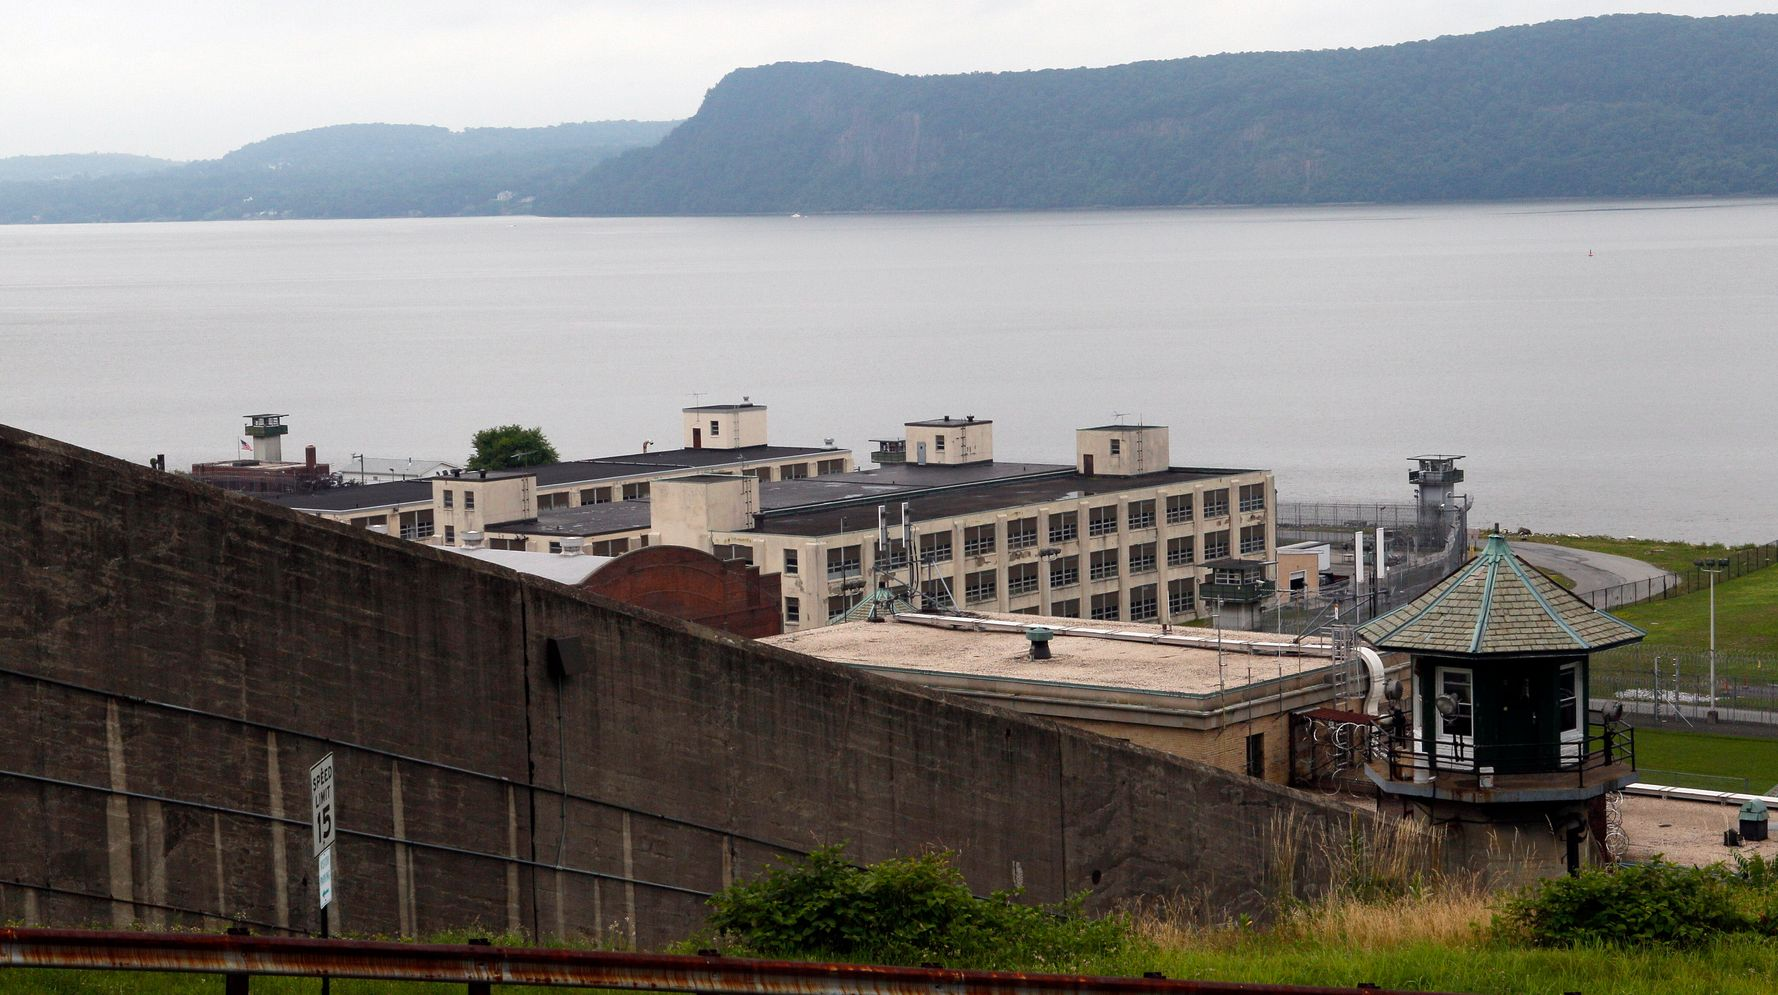 Man Who Died In Sing Sing Prison Tested Positive For COVID-19